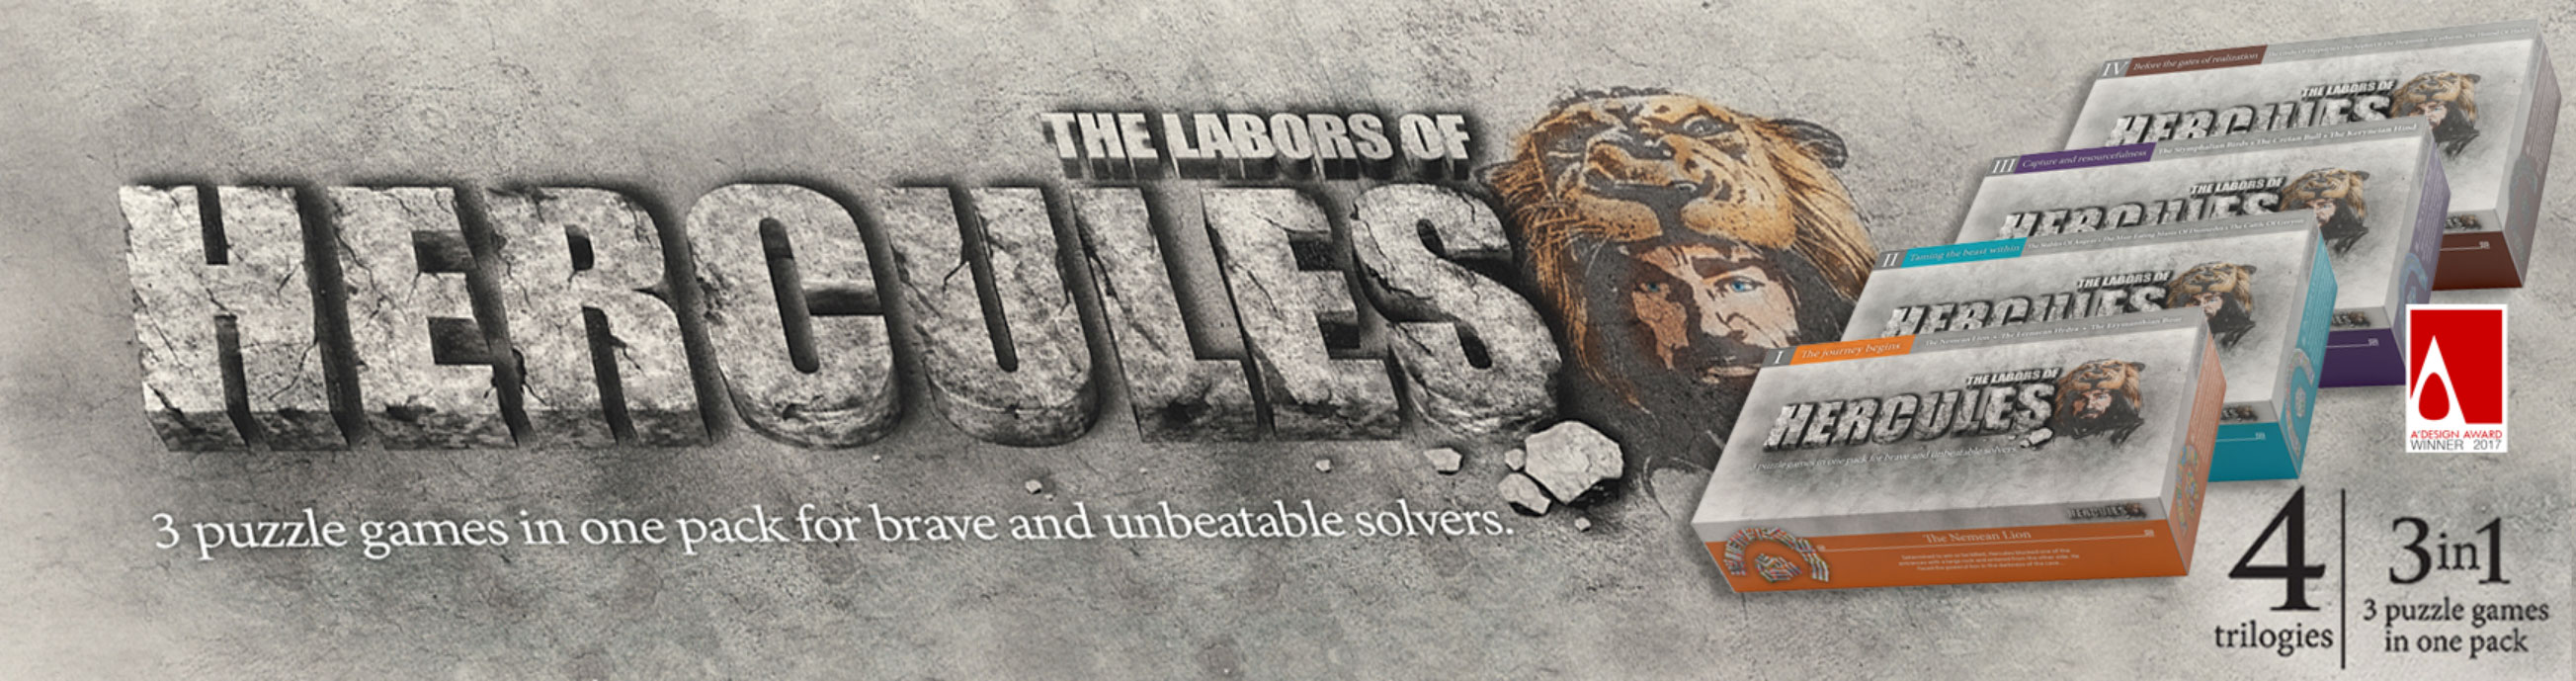 V-Puzzles - The Labors of Hercules an extraordinary Brain Teaser offering thrilling pattern-puzzle solving experiences